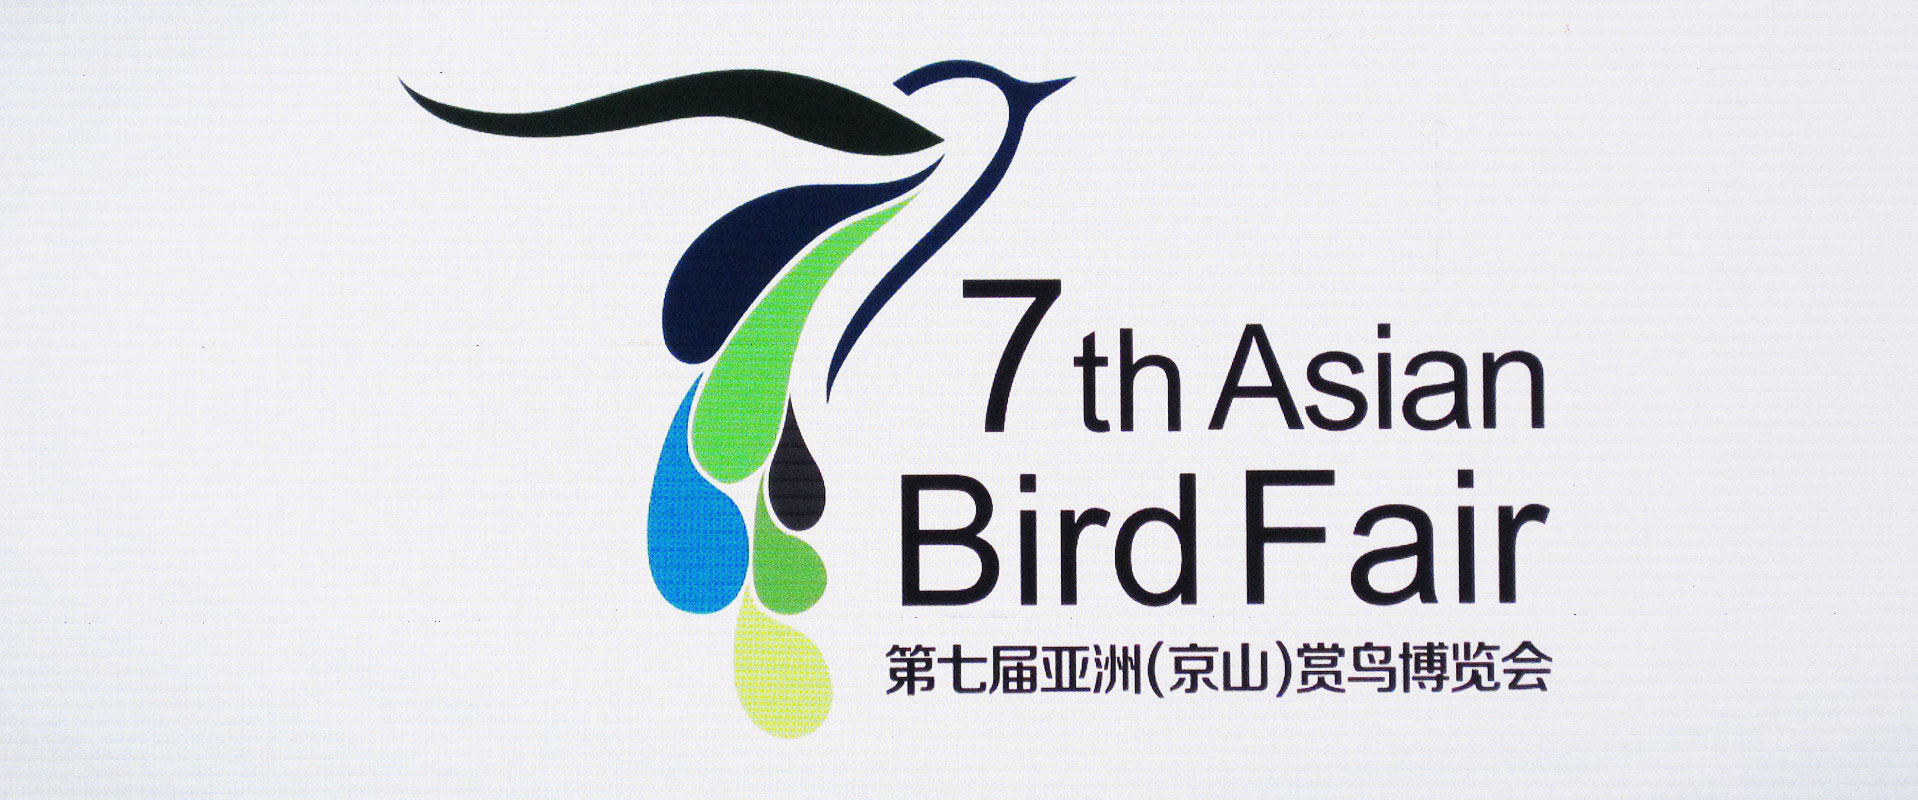 Asian Bird Fair Jingshan